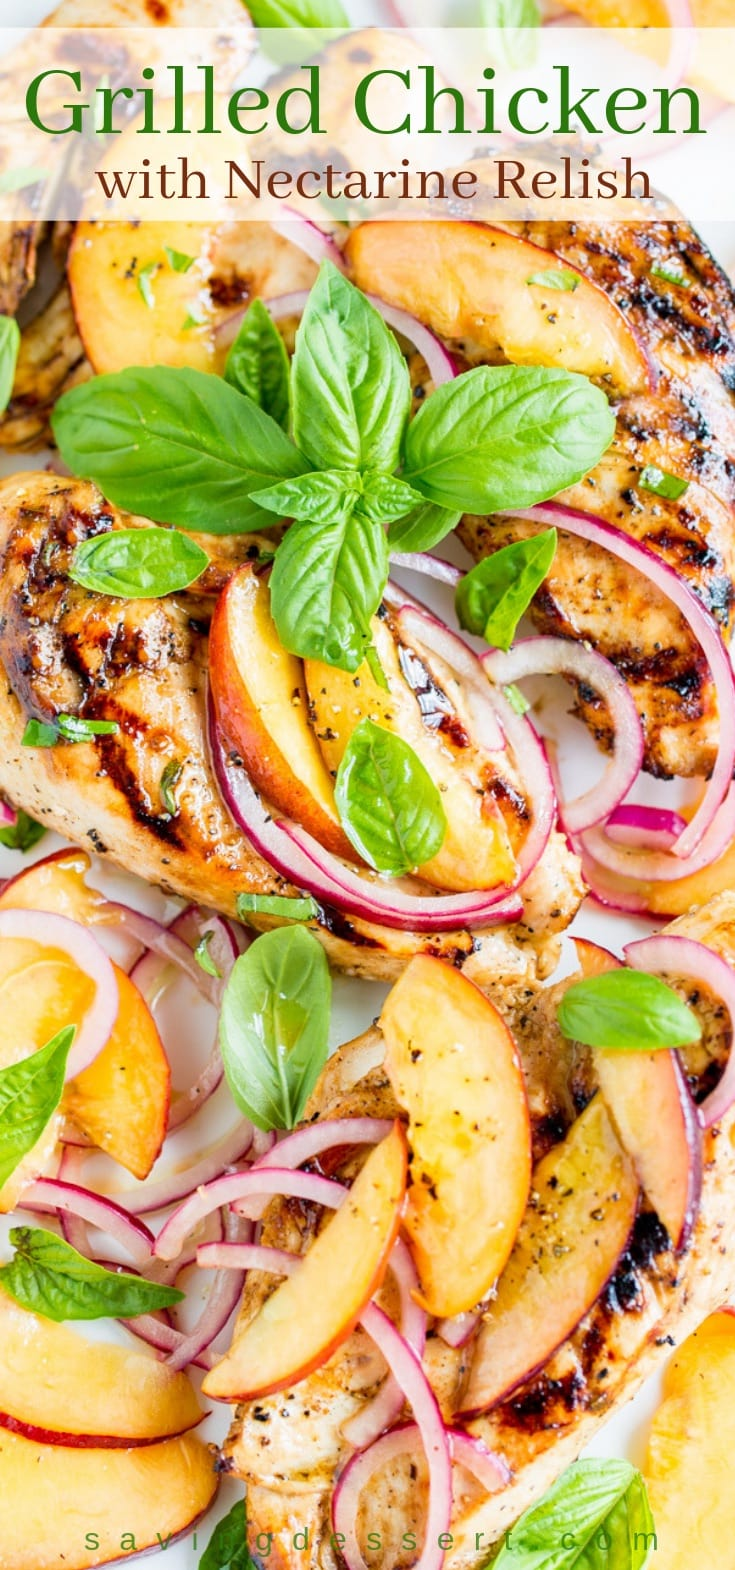 A close up of grilled chicken breasts topped with a nectarine relish with basil and red onion